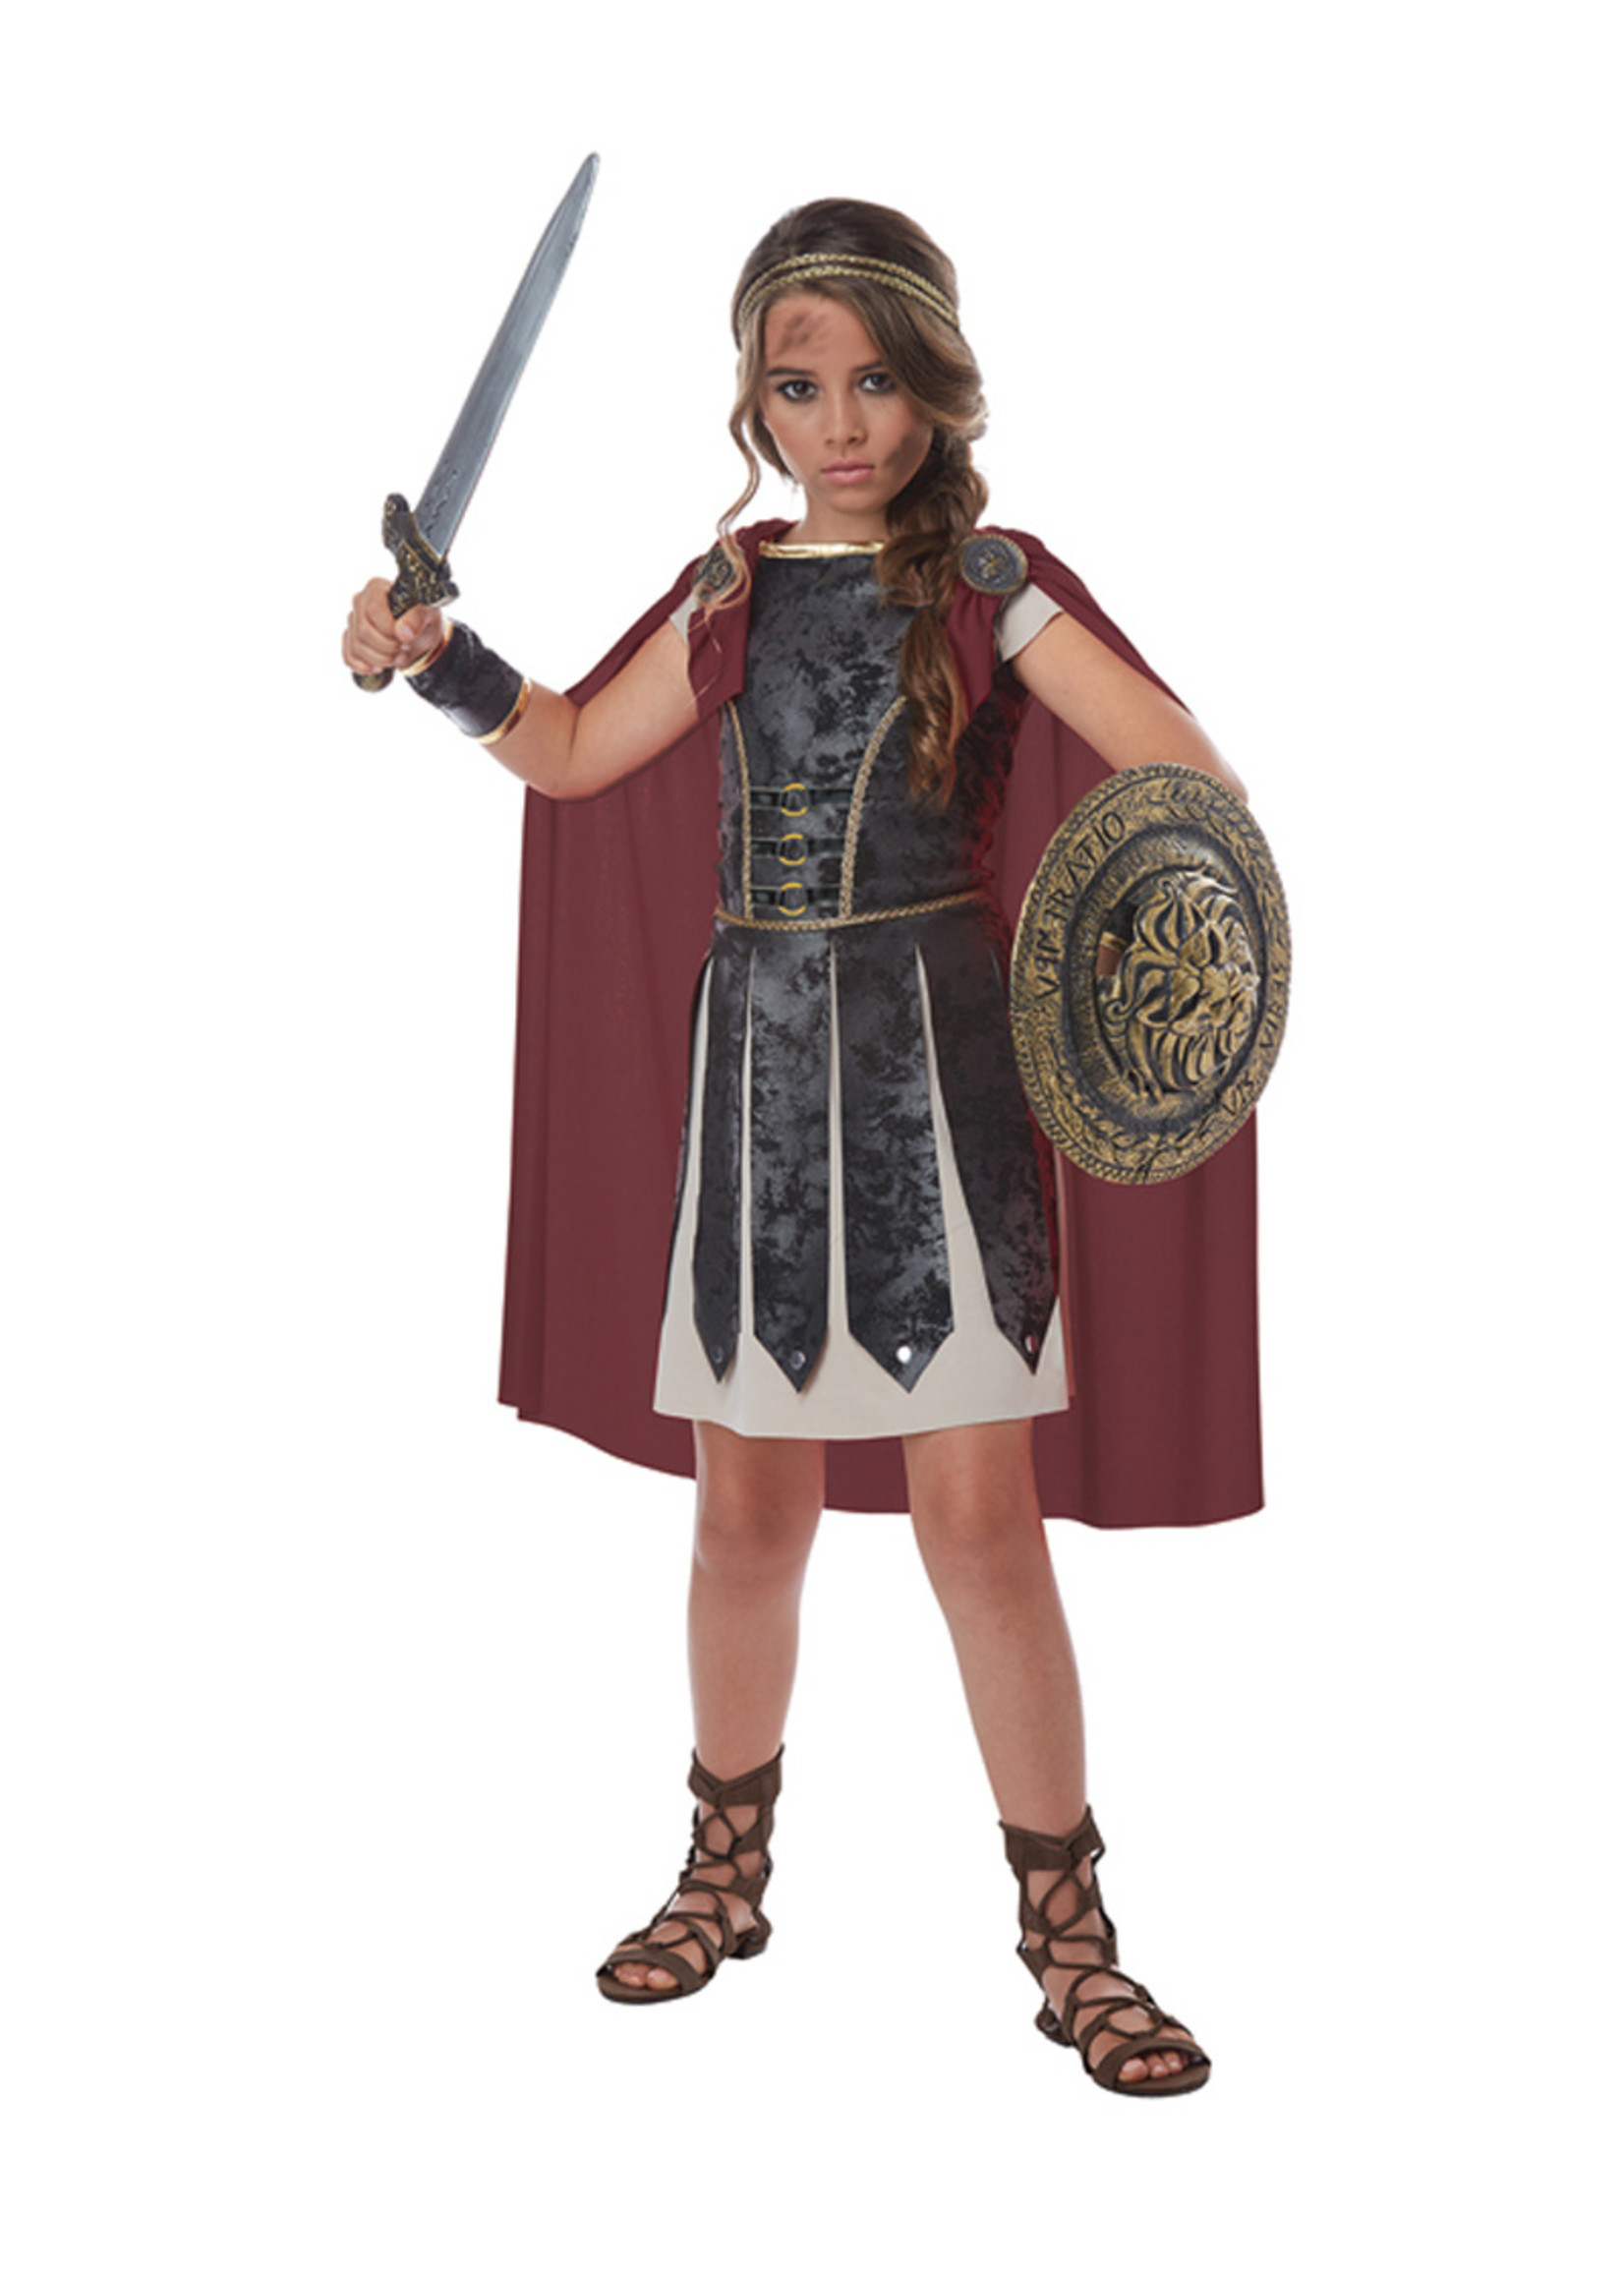 Fearless Gladiator Costume - Girls